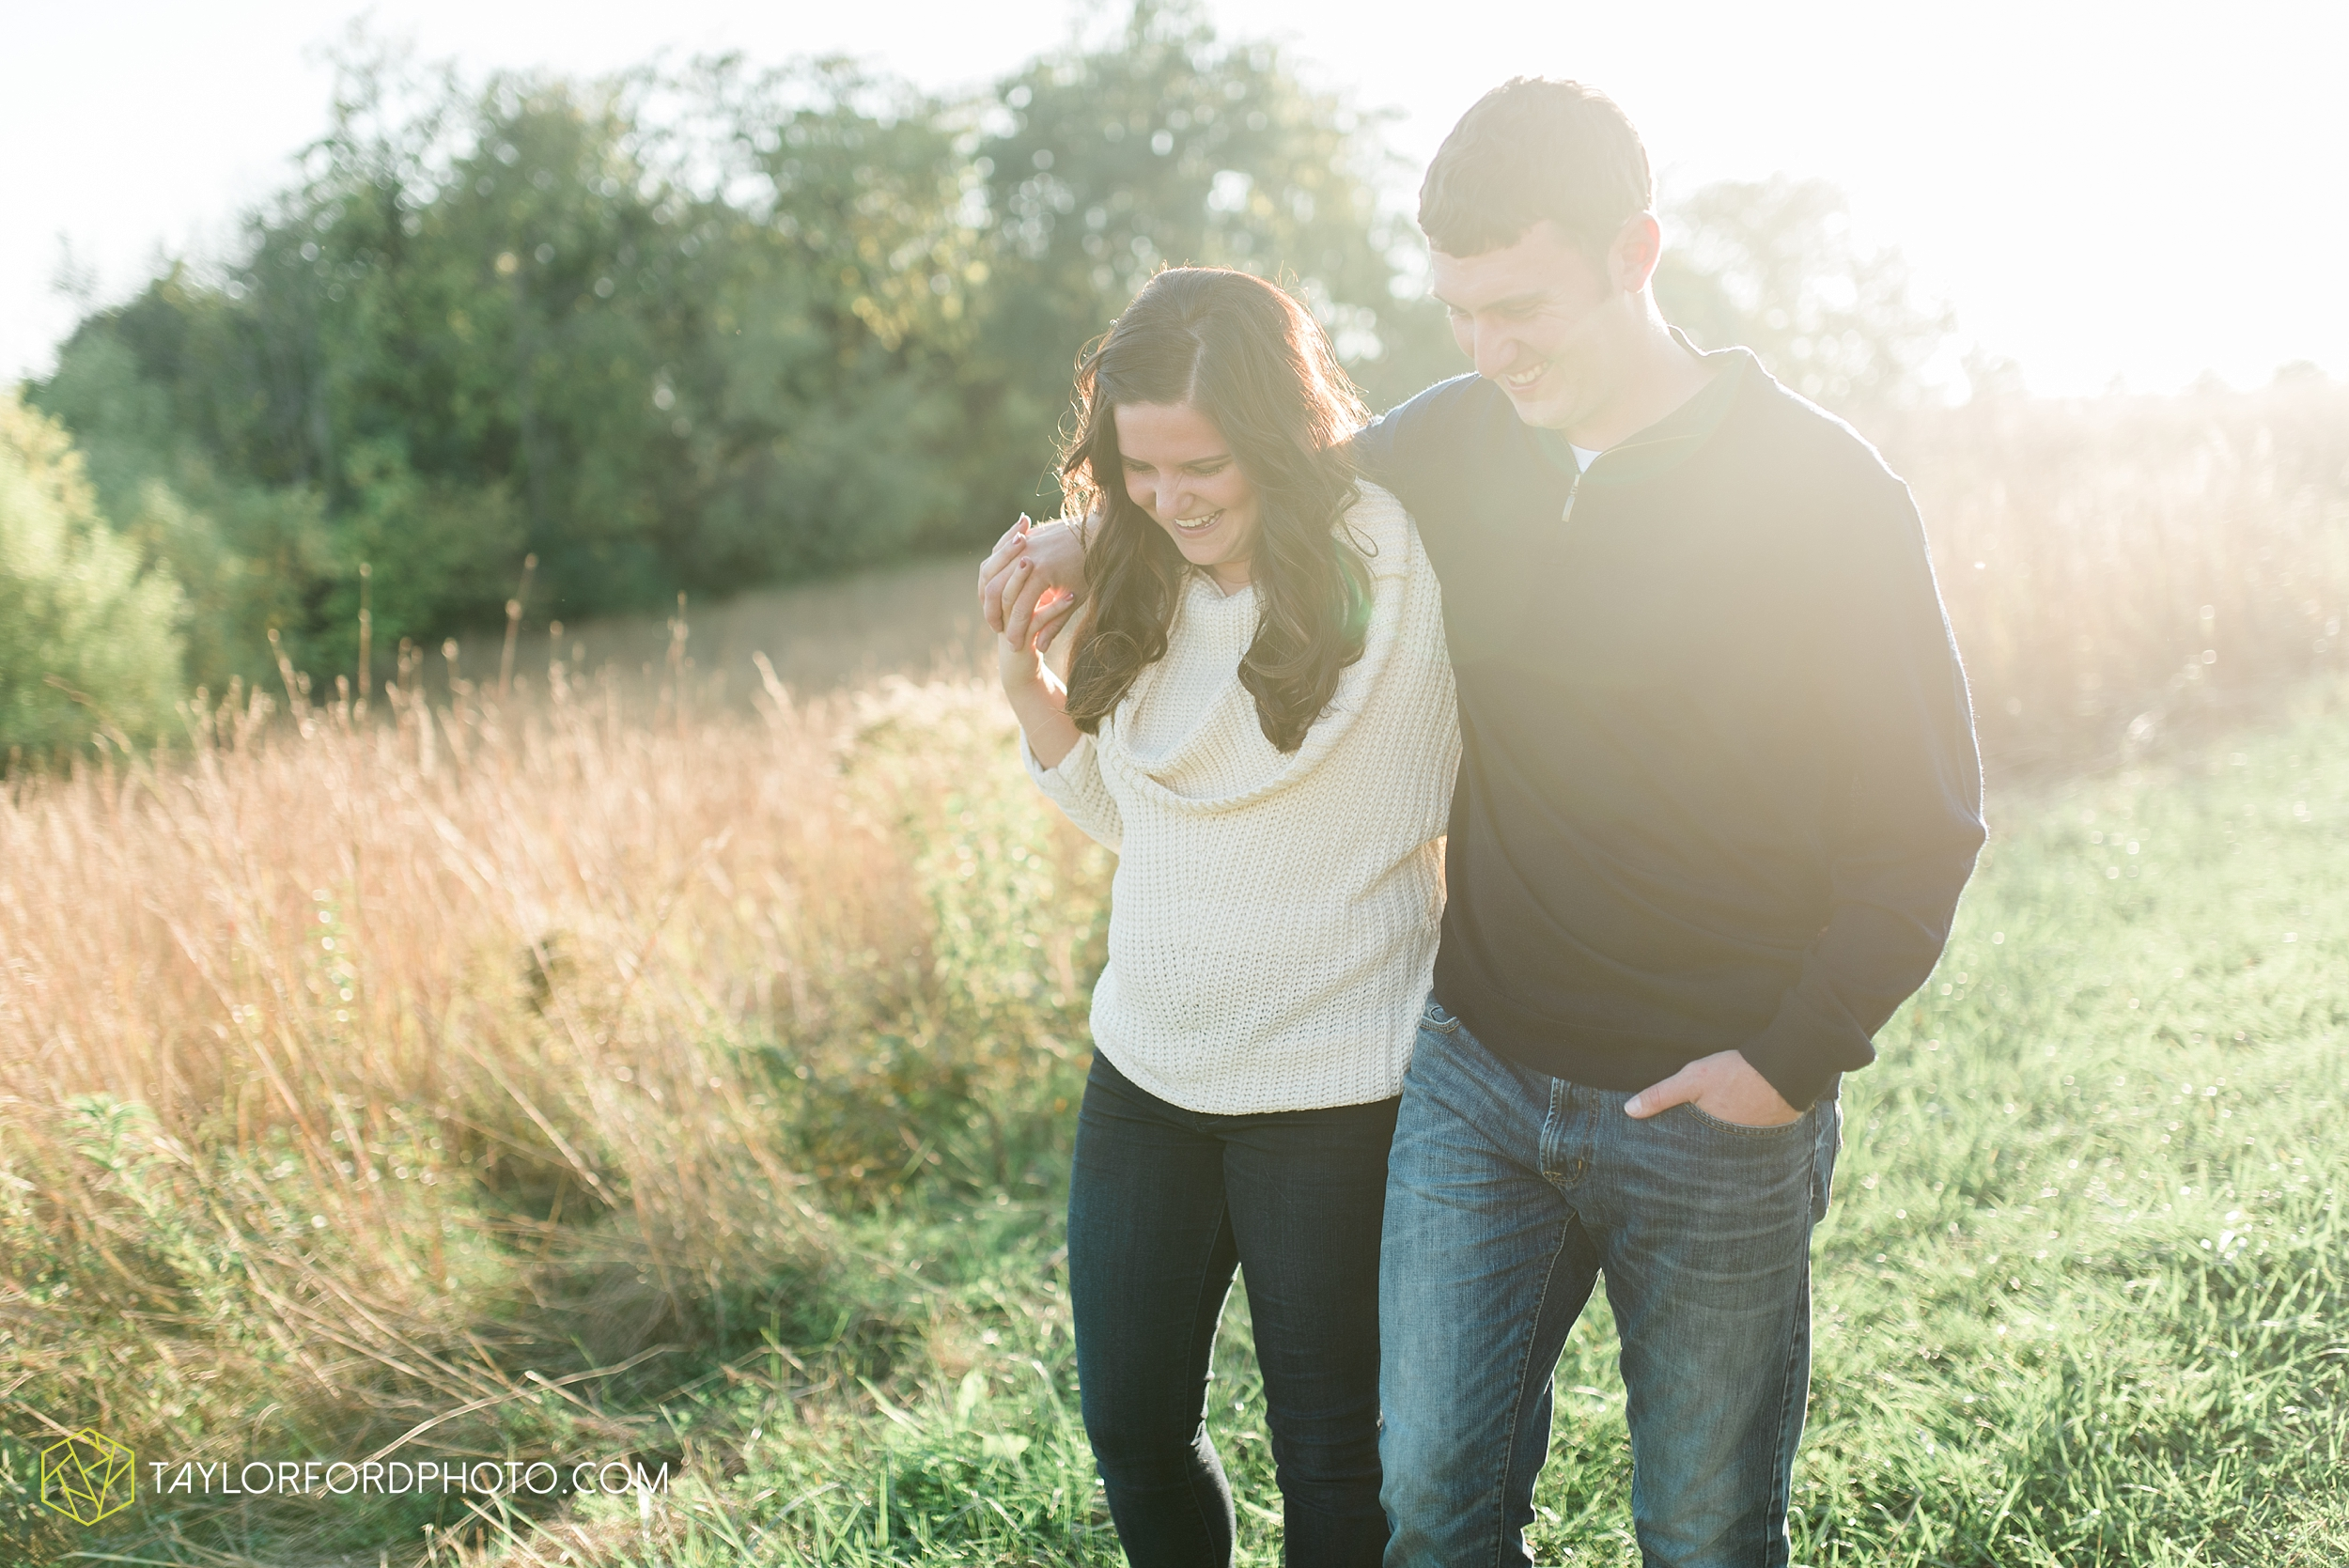 fort-wayne-indiana-engagement-wedding-photographer-Taylor-Ford-Photography-salomon-farm-park_3564.jpg